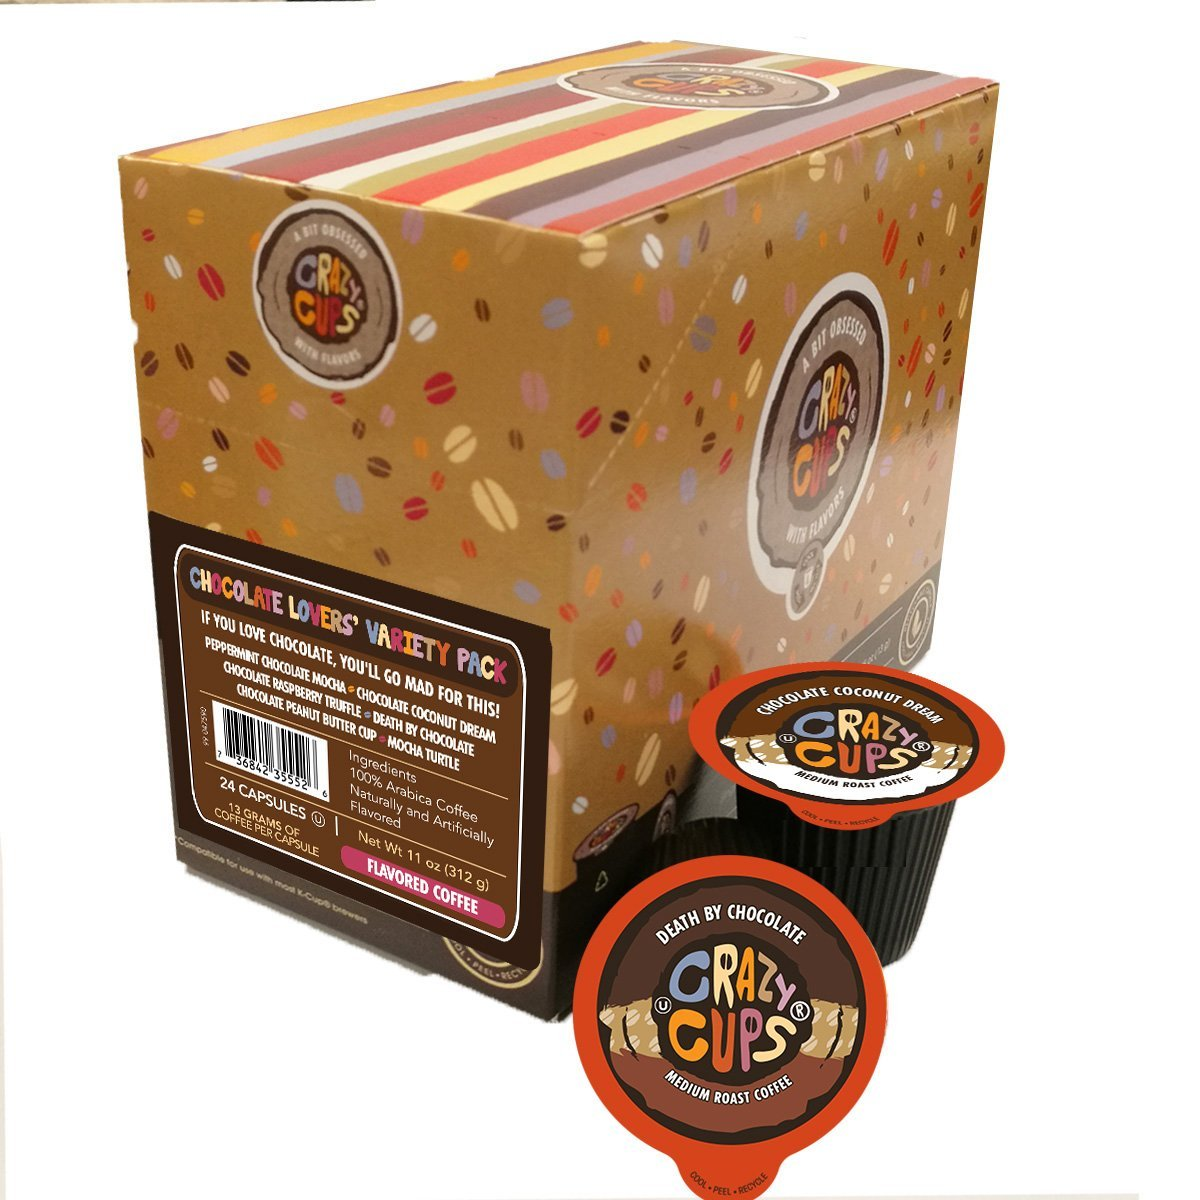 Crazy-Cups-Chocolate-Lovers-039-Flavored-Coffee-Variety-Pack-Sampler-24-ct thumbnail 5